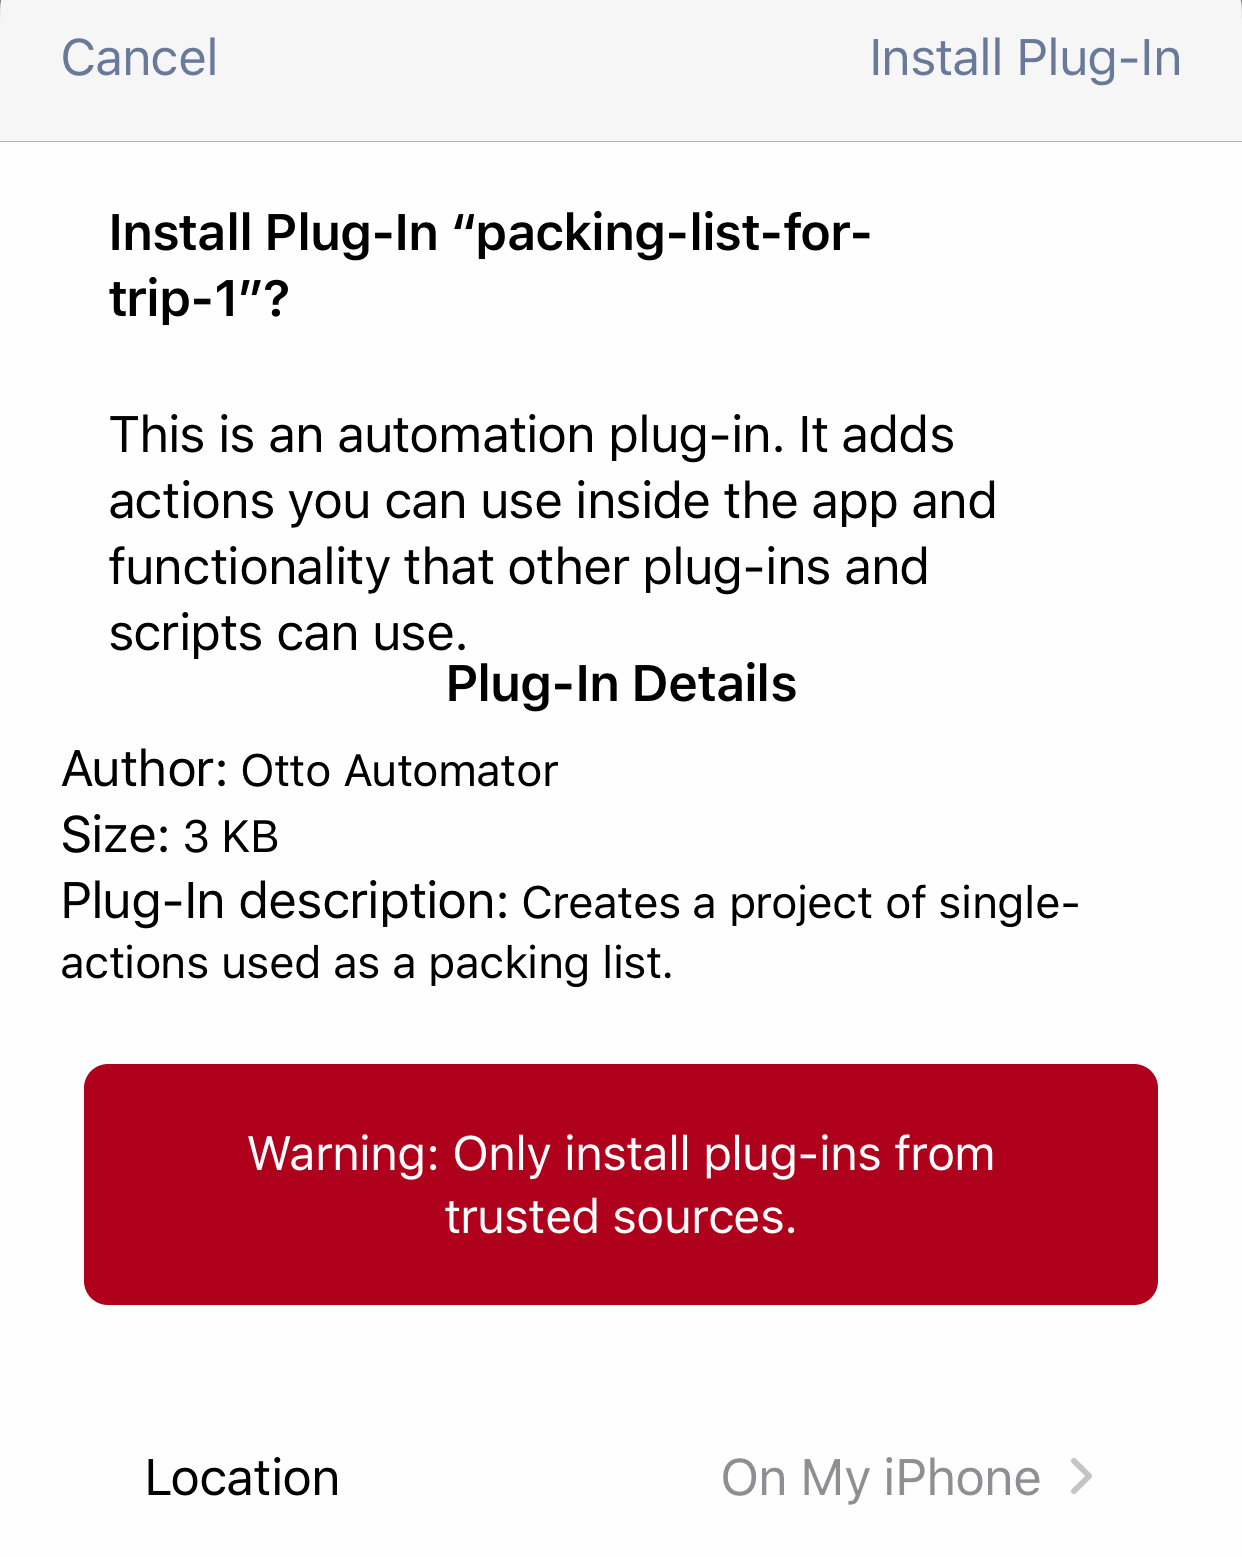 The Omni Automation Plug-In import dialog.